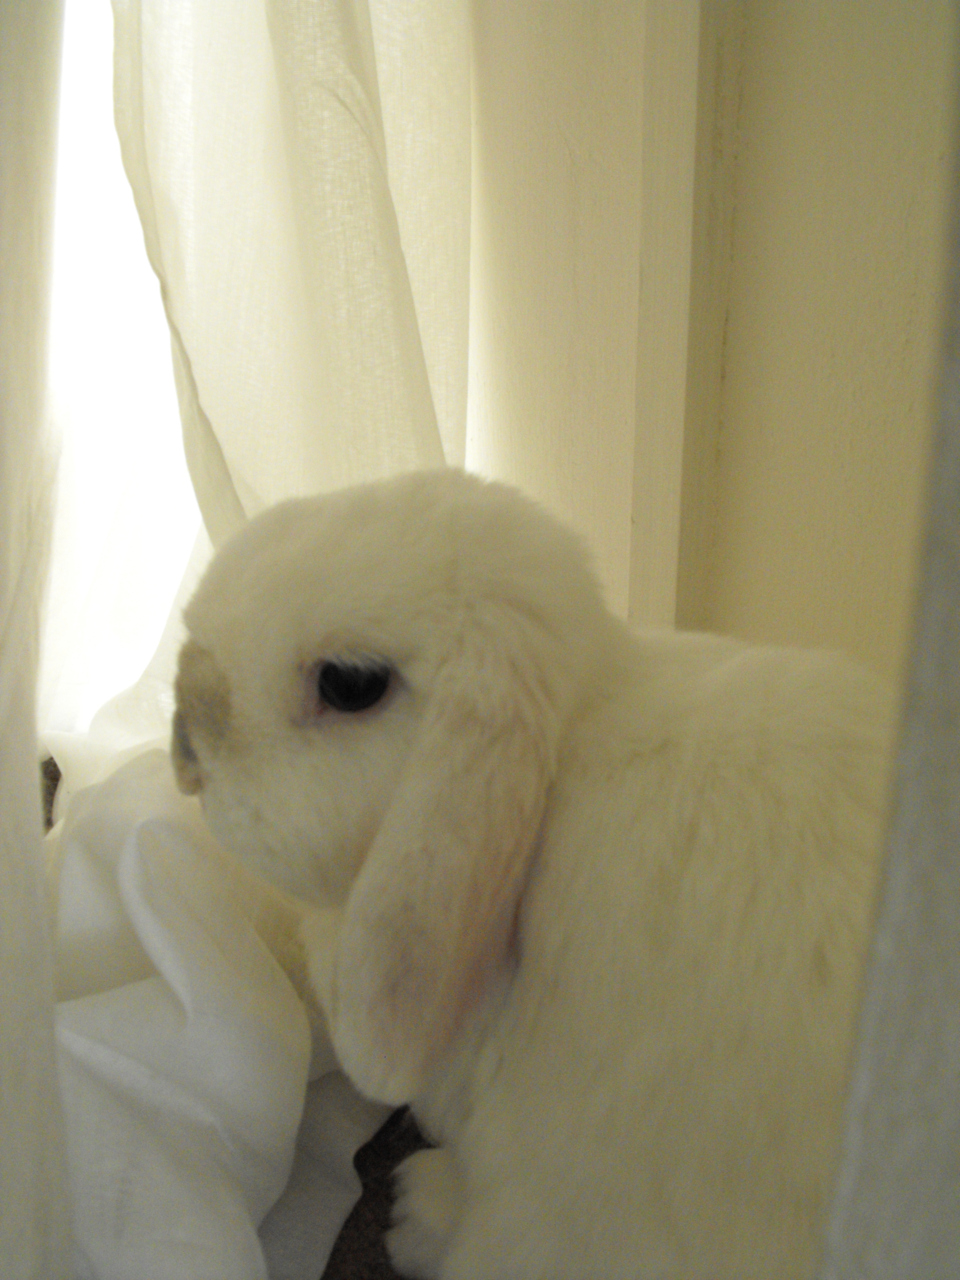 Bunny Gazes Wistfully Out the Window